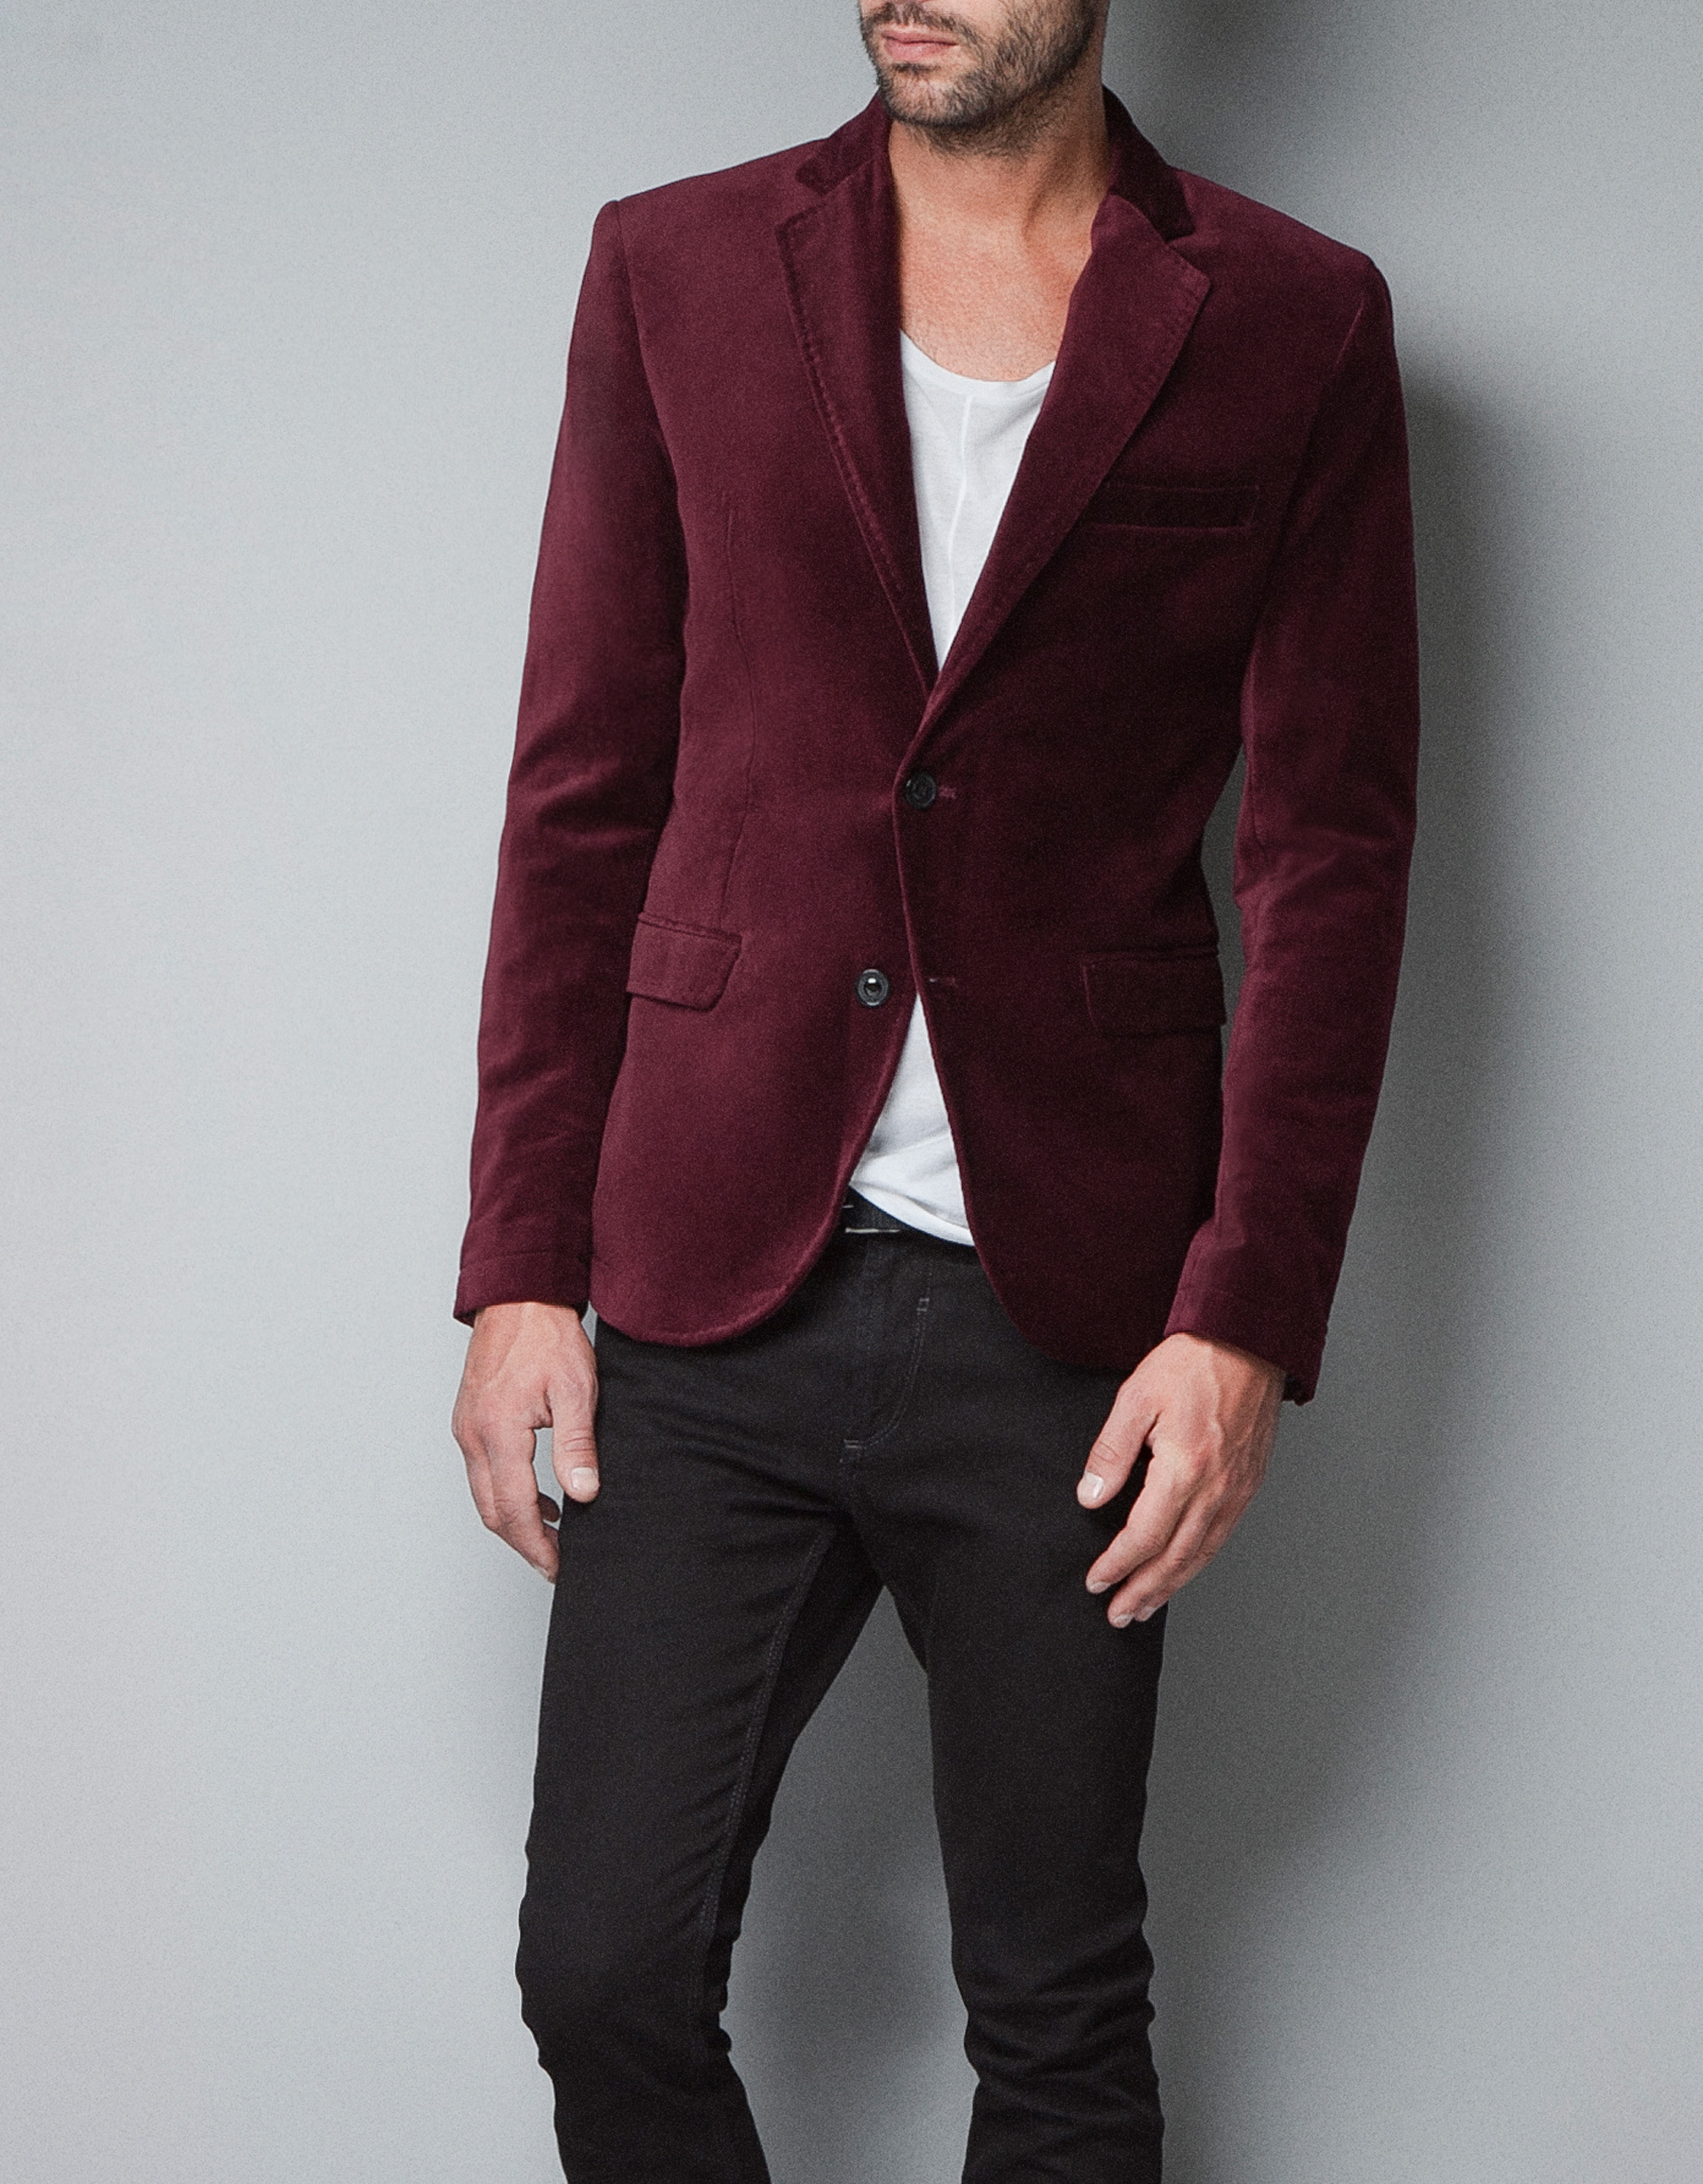 A men's blazer is a mix of a sports jacket and suit jacket and does not include matching dress pants. Try a casual look with our Tech System Blazer, or dress it up with our Slim Cotton Sateen Blue Suit Jacket.